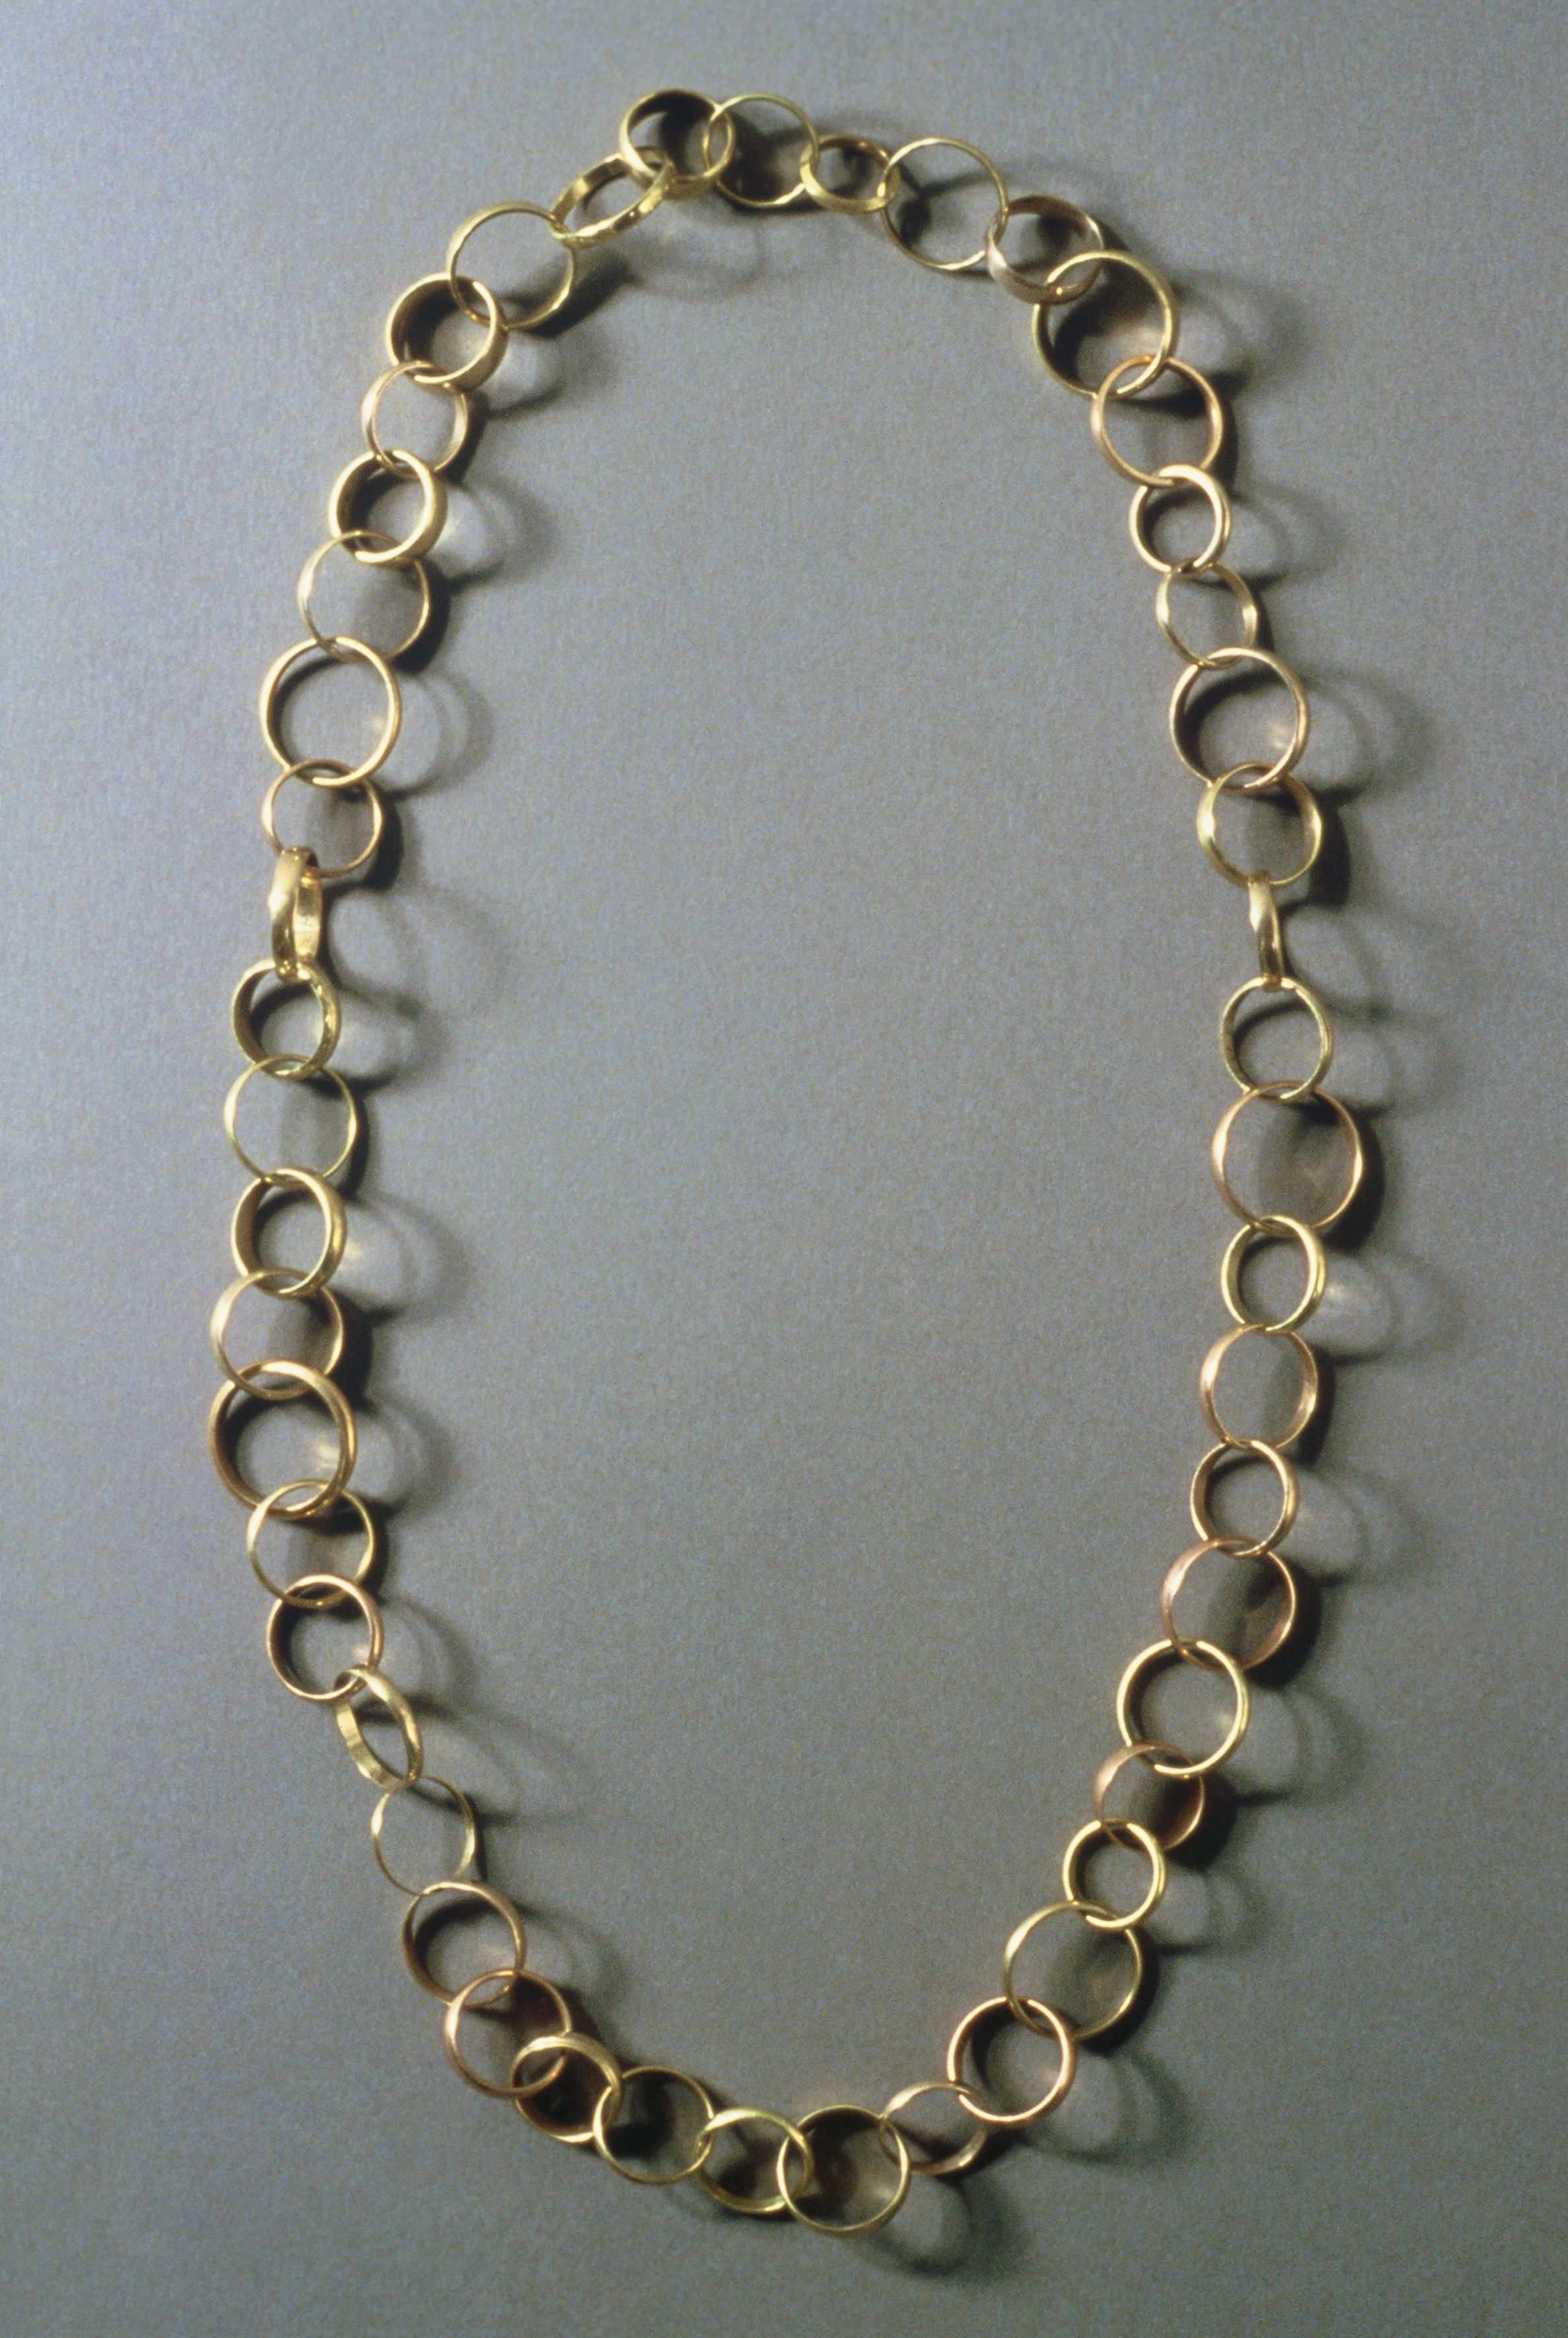 made of 48 used wedding rings Otto Kunzli Necklace